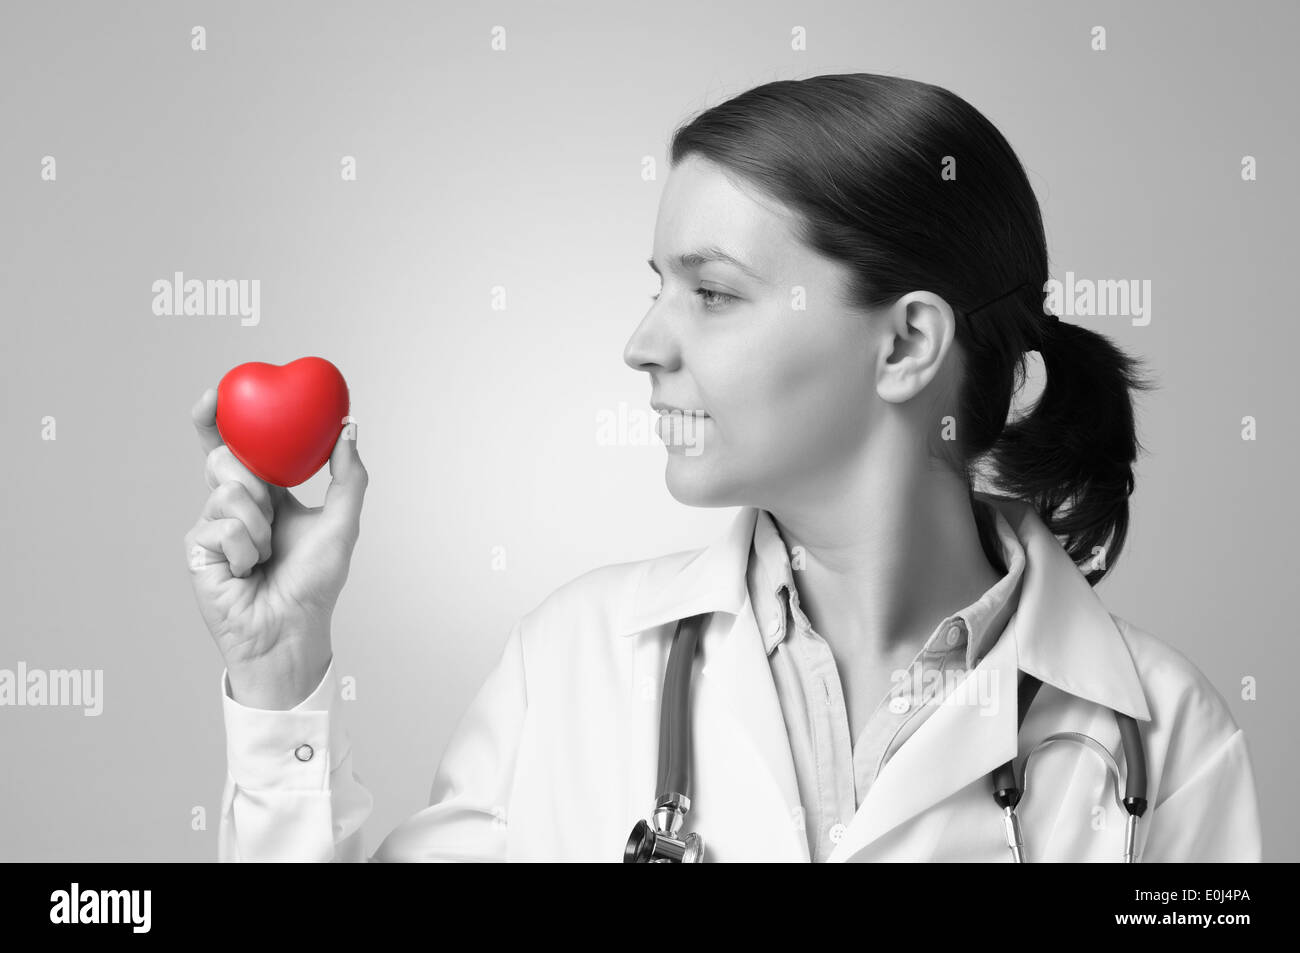 Red heart shape in the hand of a doctor - Stock Photo